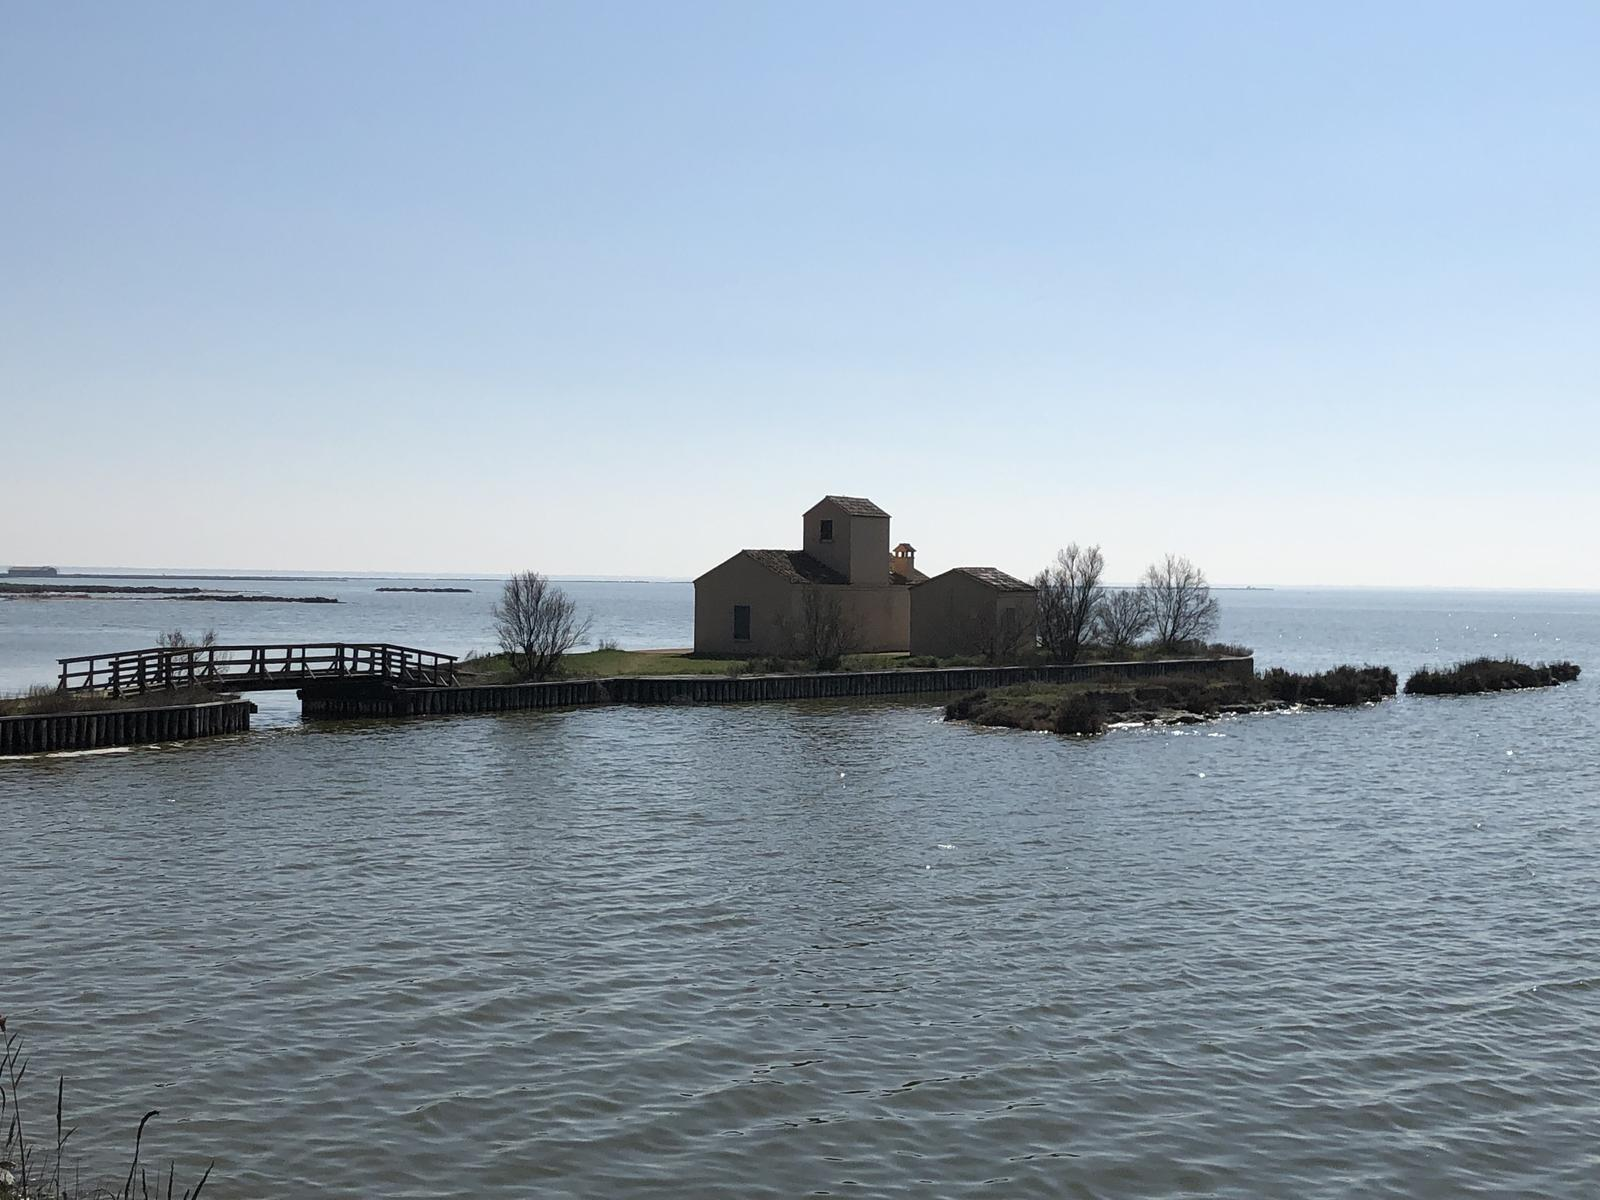 Photo of Lido di Spina - Casone Caldirolo